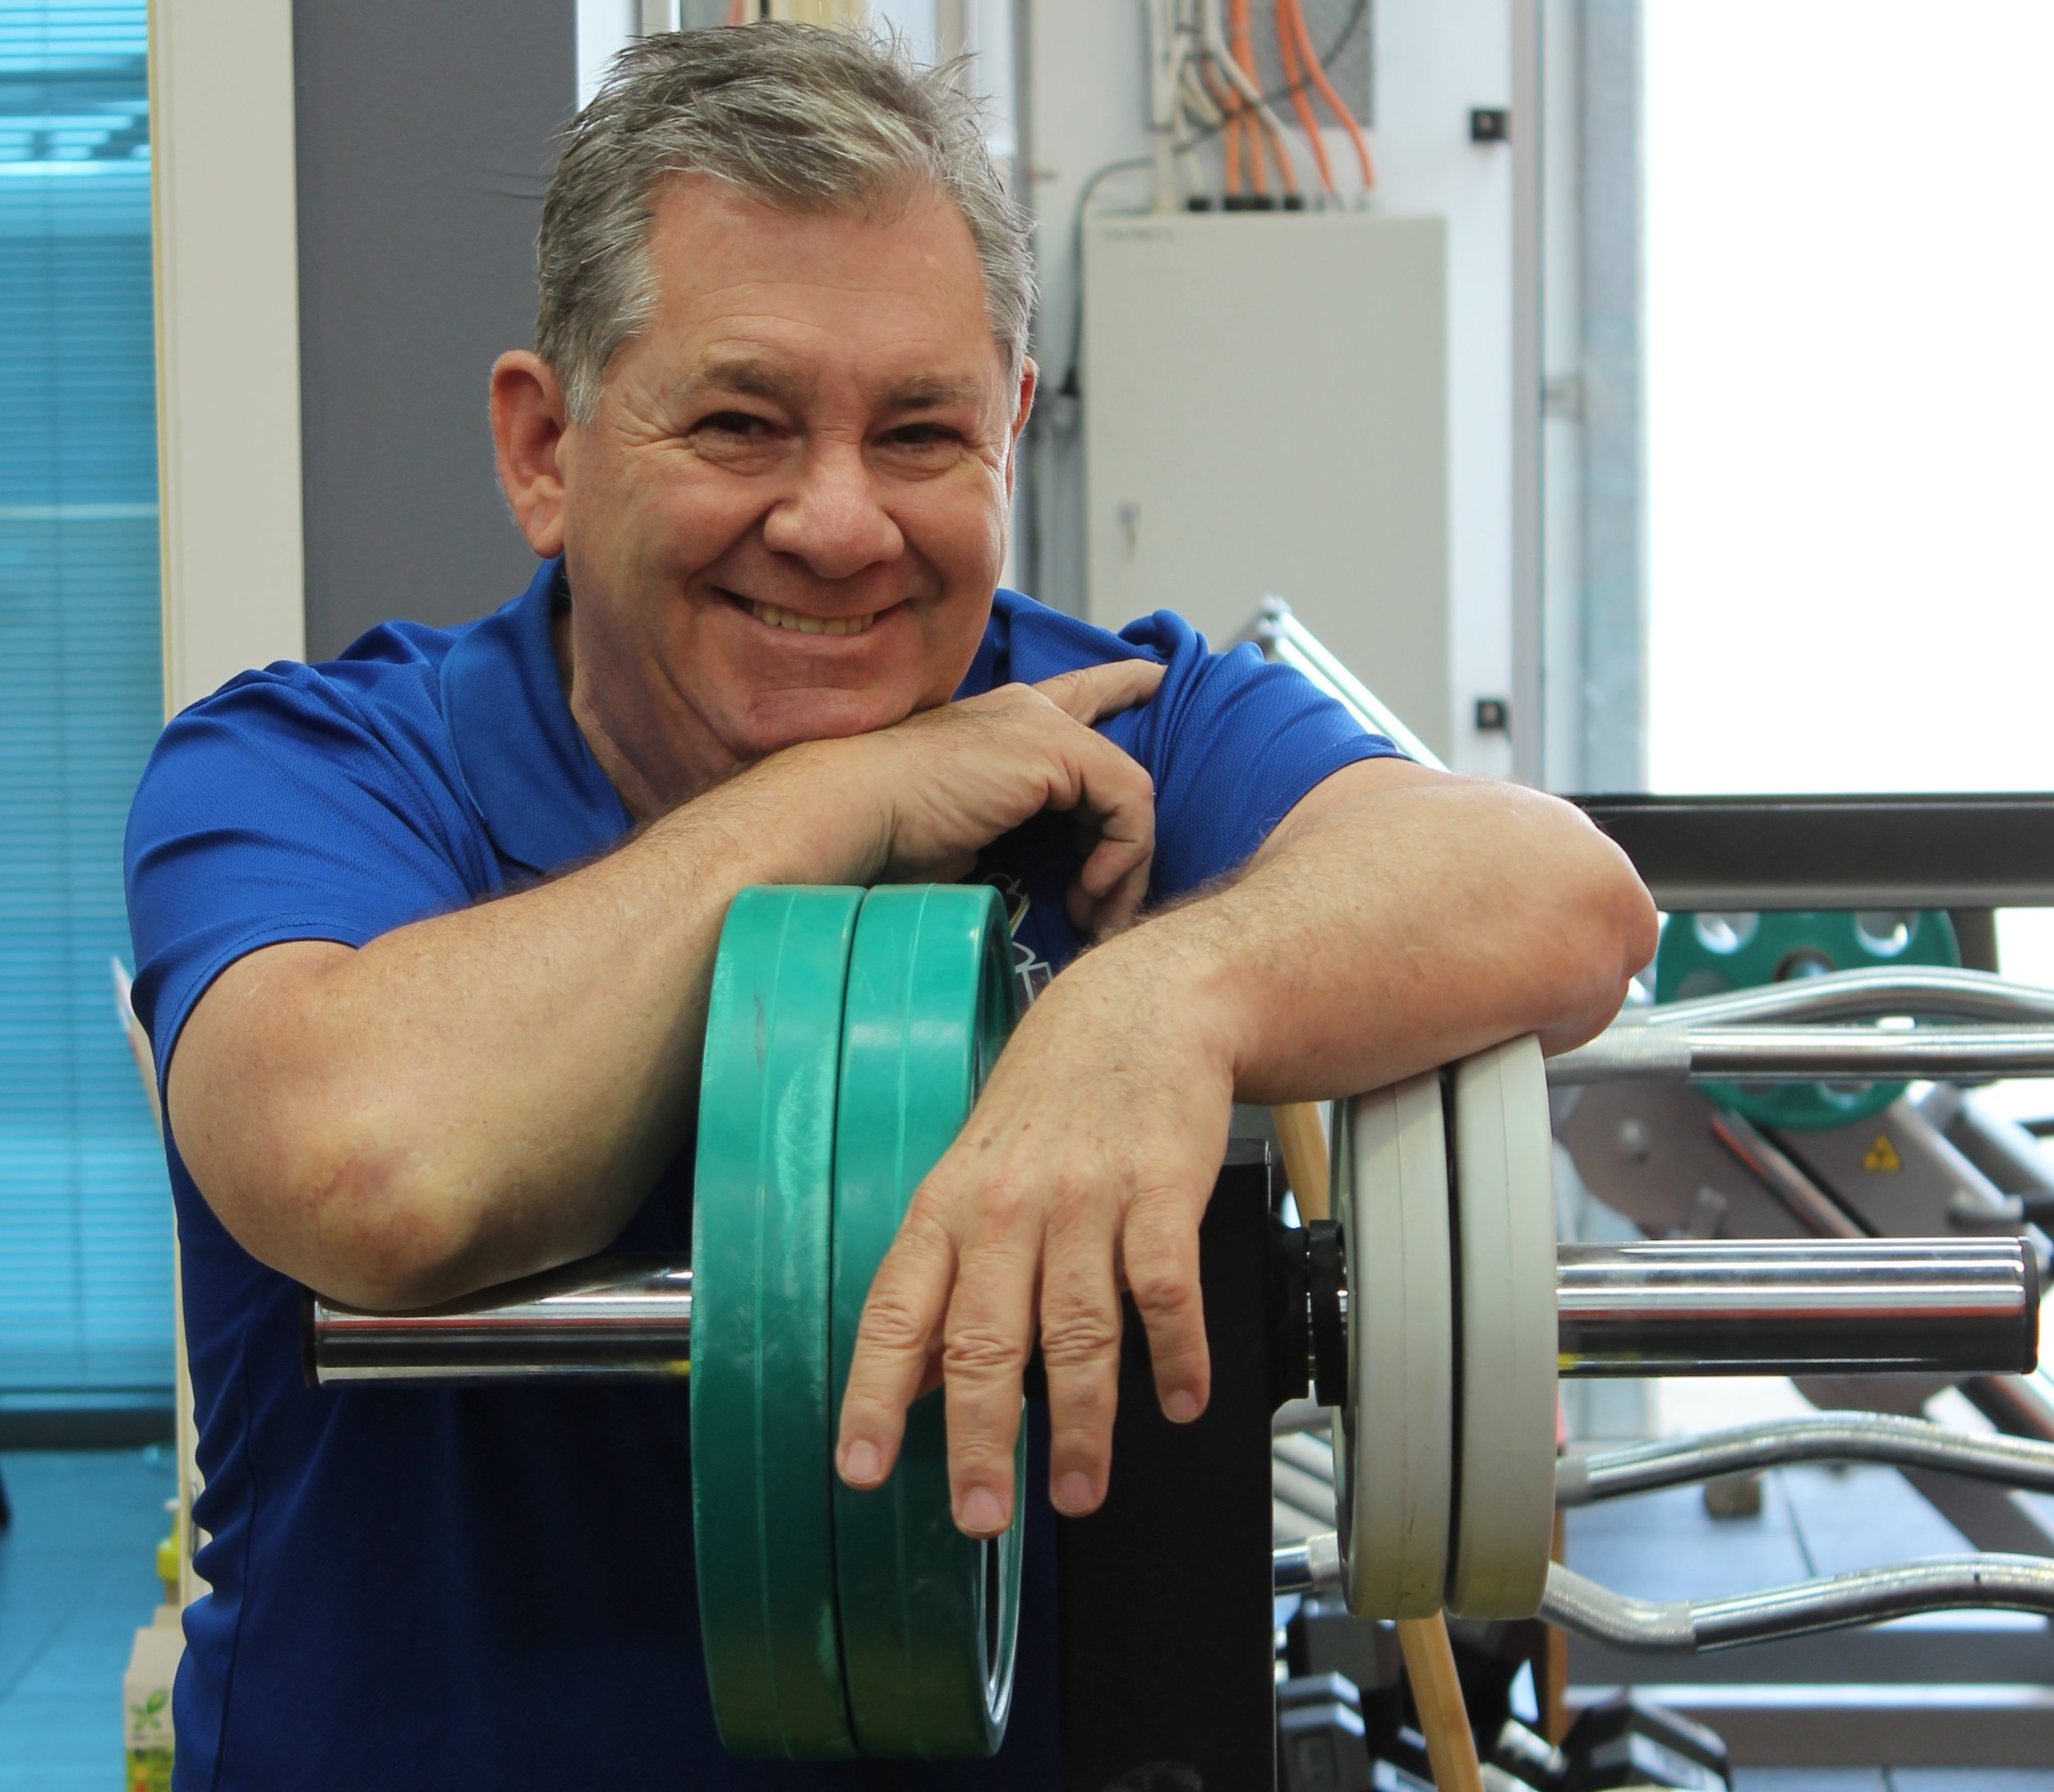 IF YOU ARE AN OLDER ADULT YOU NEED TO BE WEIGHT TRAINING!